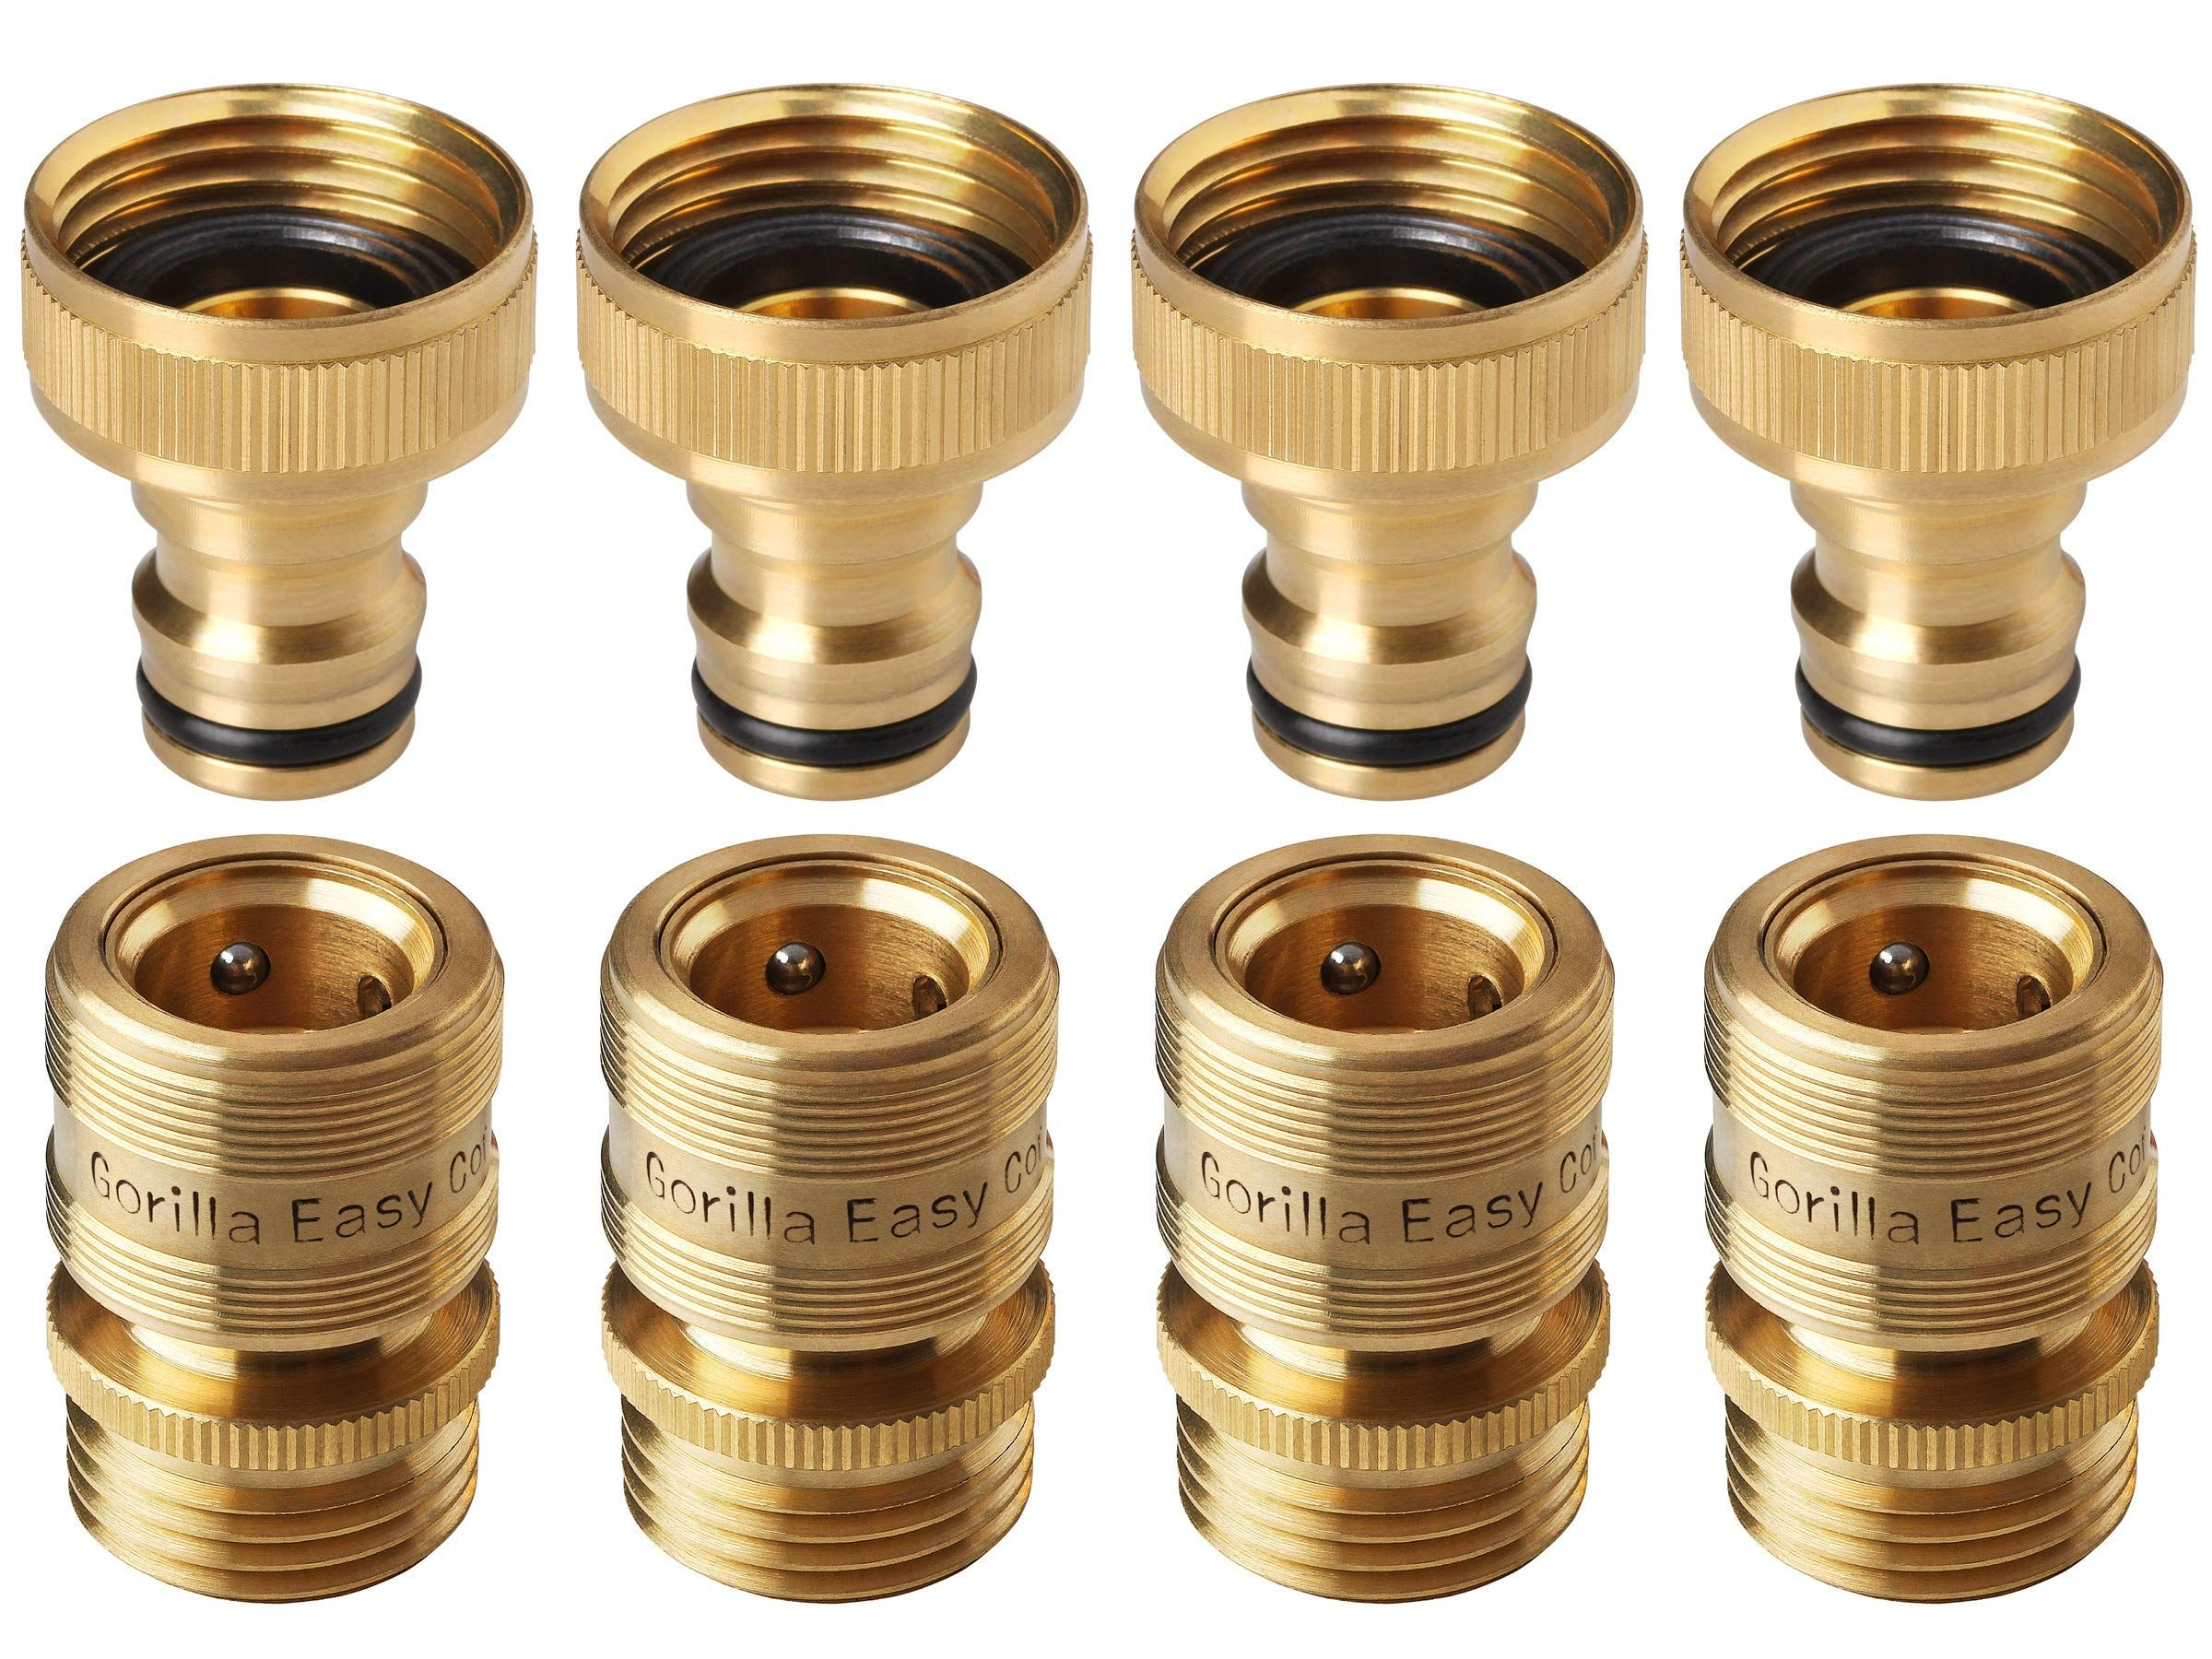 Gorilla Easy Connect Garden Hose Quick Connect Fittings A Inch Ght Solid Brass 4 Sets Of Male Female Connectors Amazing Gardens Garden Hose Garden Hoses